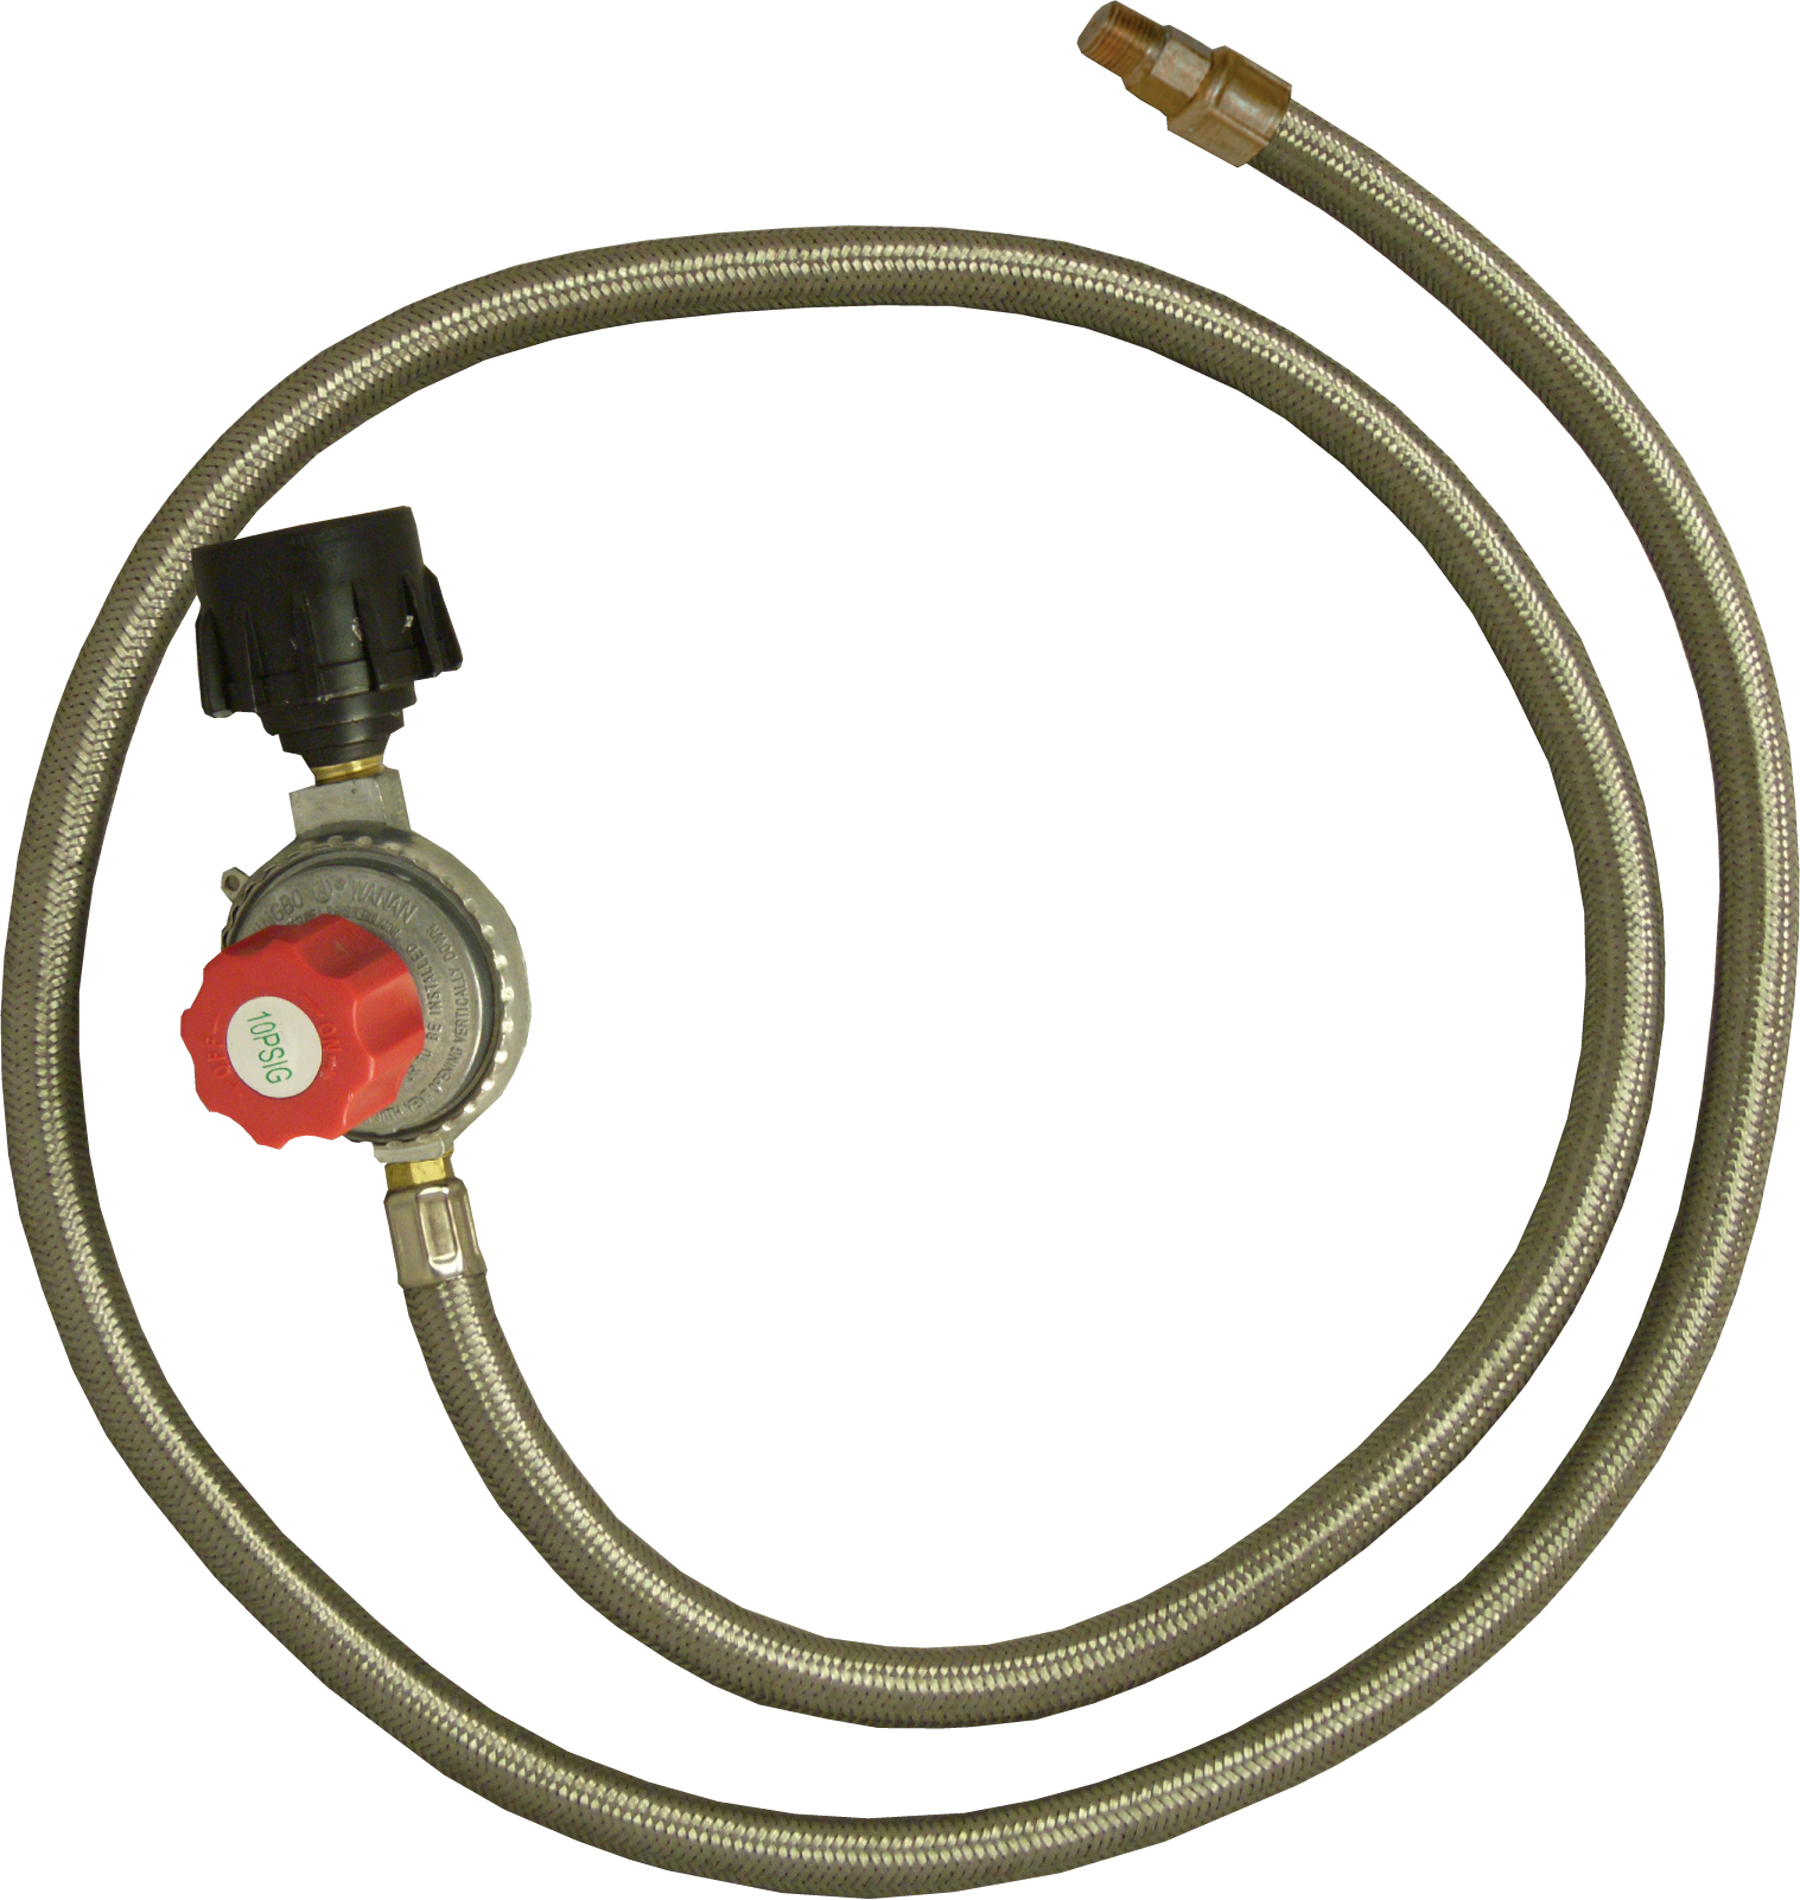 King Kooker® High Pressure 5 PSI Adjustable Regulator with Stainless Steel Braided Hose- 1/8 Male Fitting PartNumber: 07135954000P KsnValue: 07135954000 MfgPartNumber: 30502